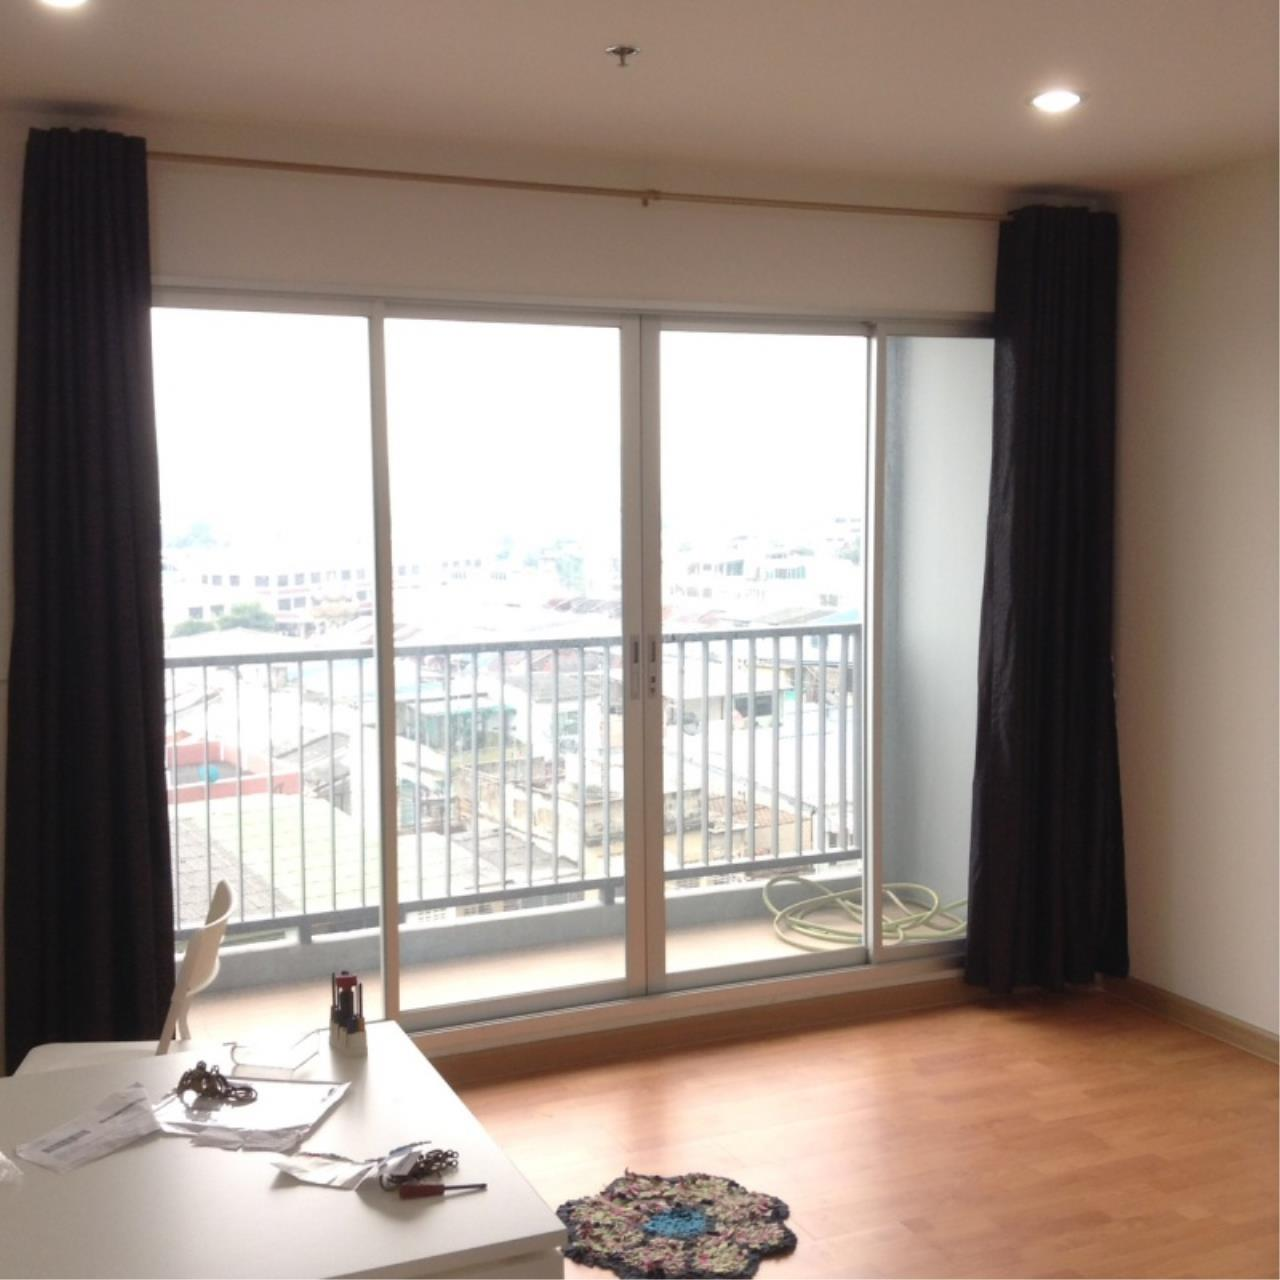 Century21 Skylux Agency's The President Sathorn-Ratchaphruek 1 / Condo For Sale / 2 Bedroom / 59.9 SQM / BTS Bang Wa / Bangkok 7